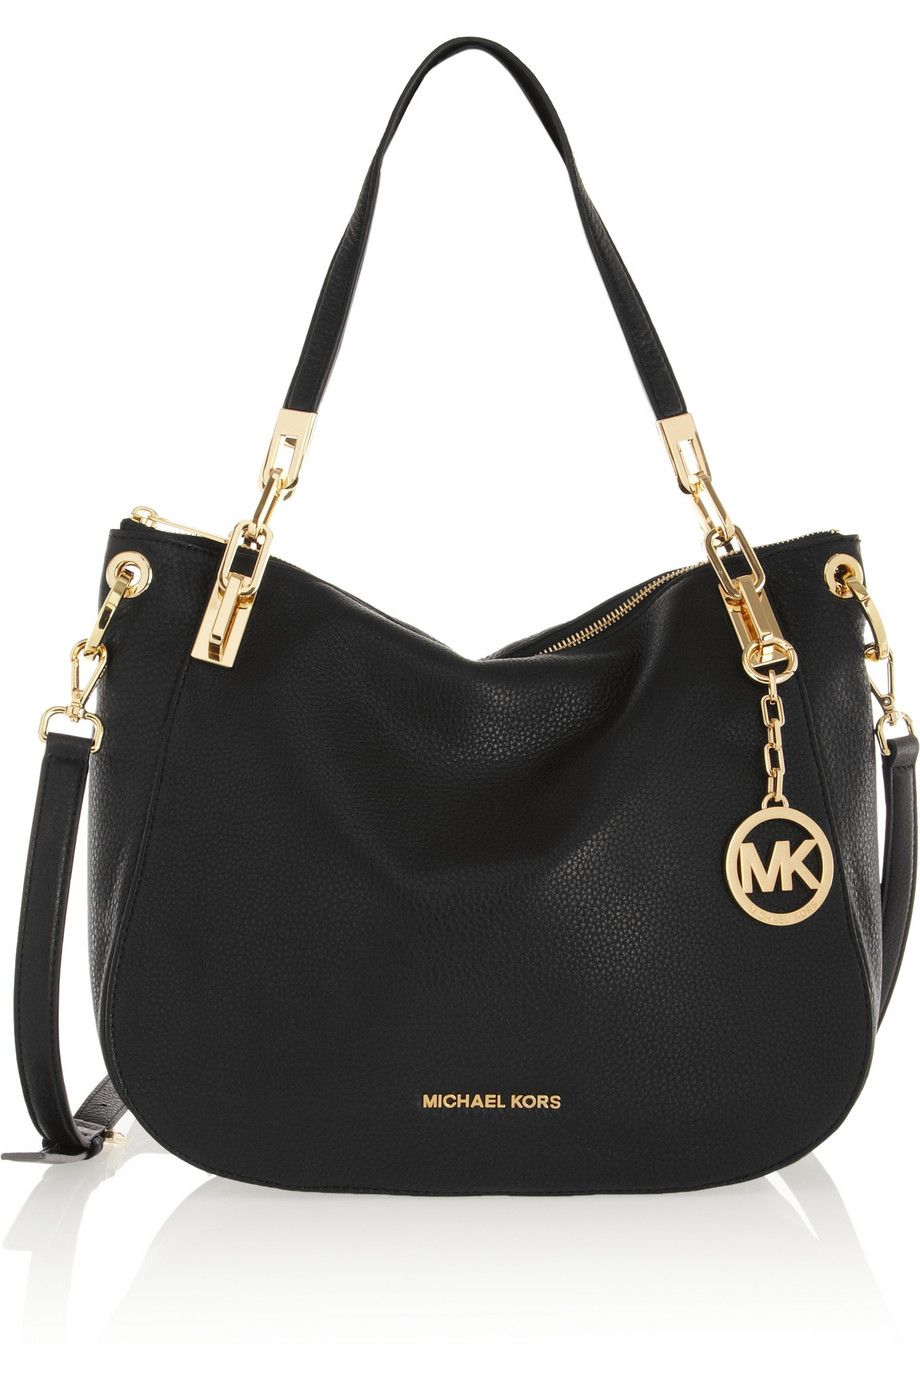 6a21687546ba Win a Wing Necklace from Miriam Merenfeld Jewelry Michael Kors Handbags  Outlet